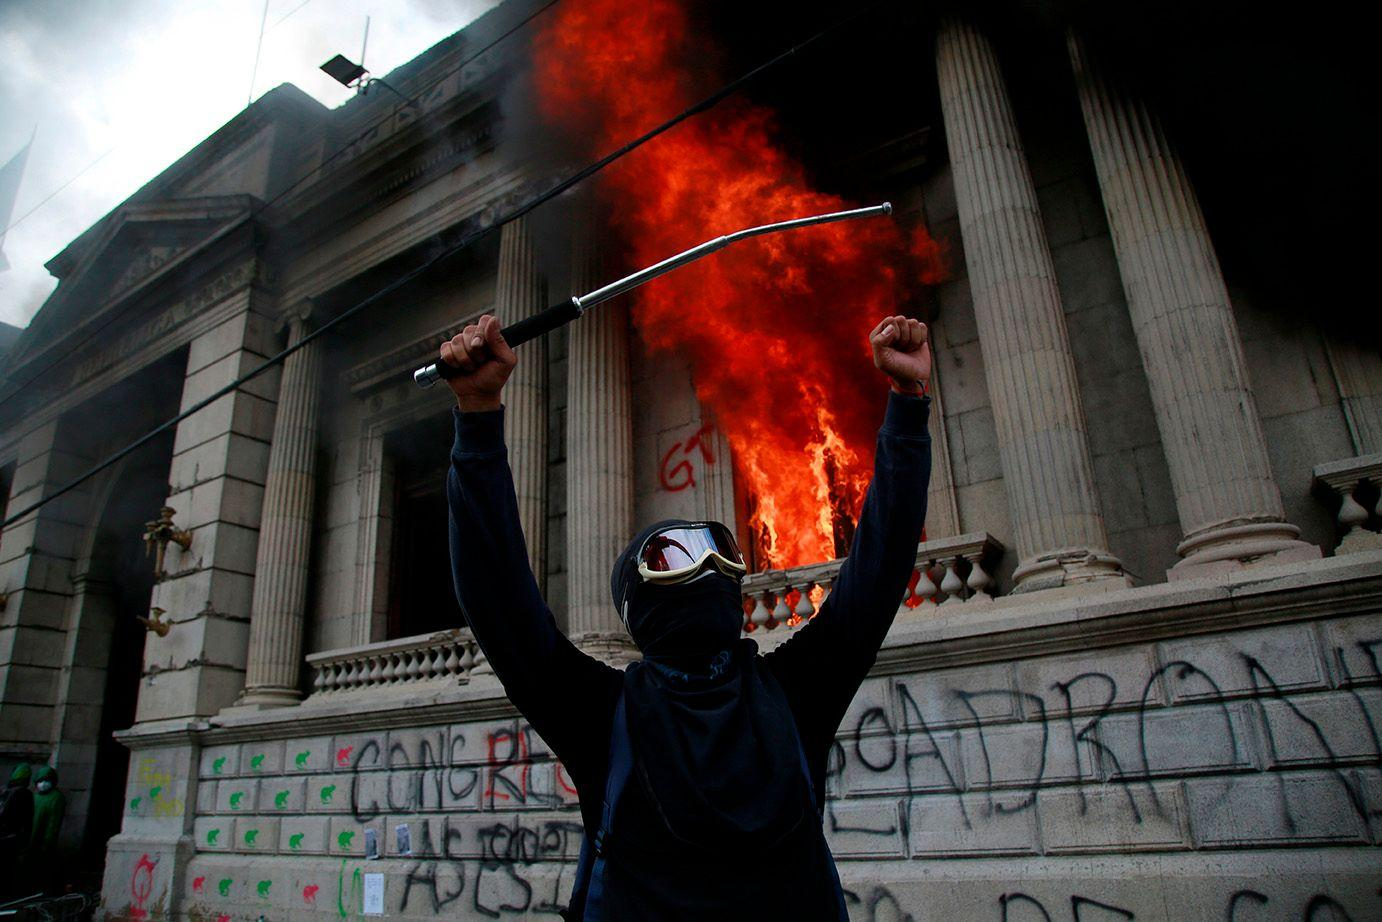 A protester celebrates the burning of Congress. Esteban Biba / EFE /